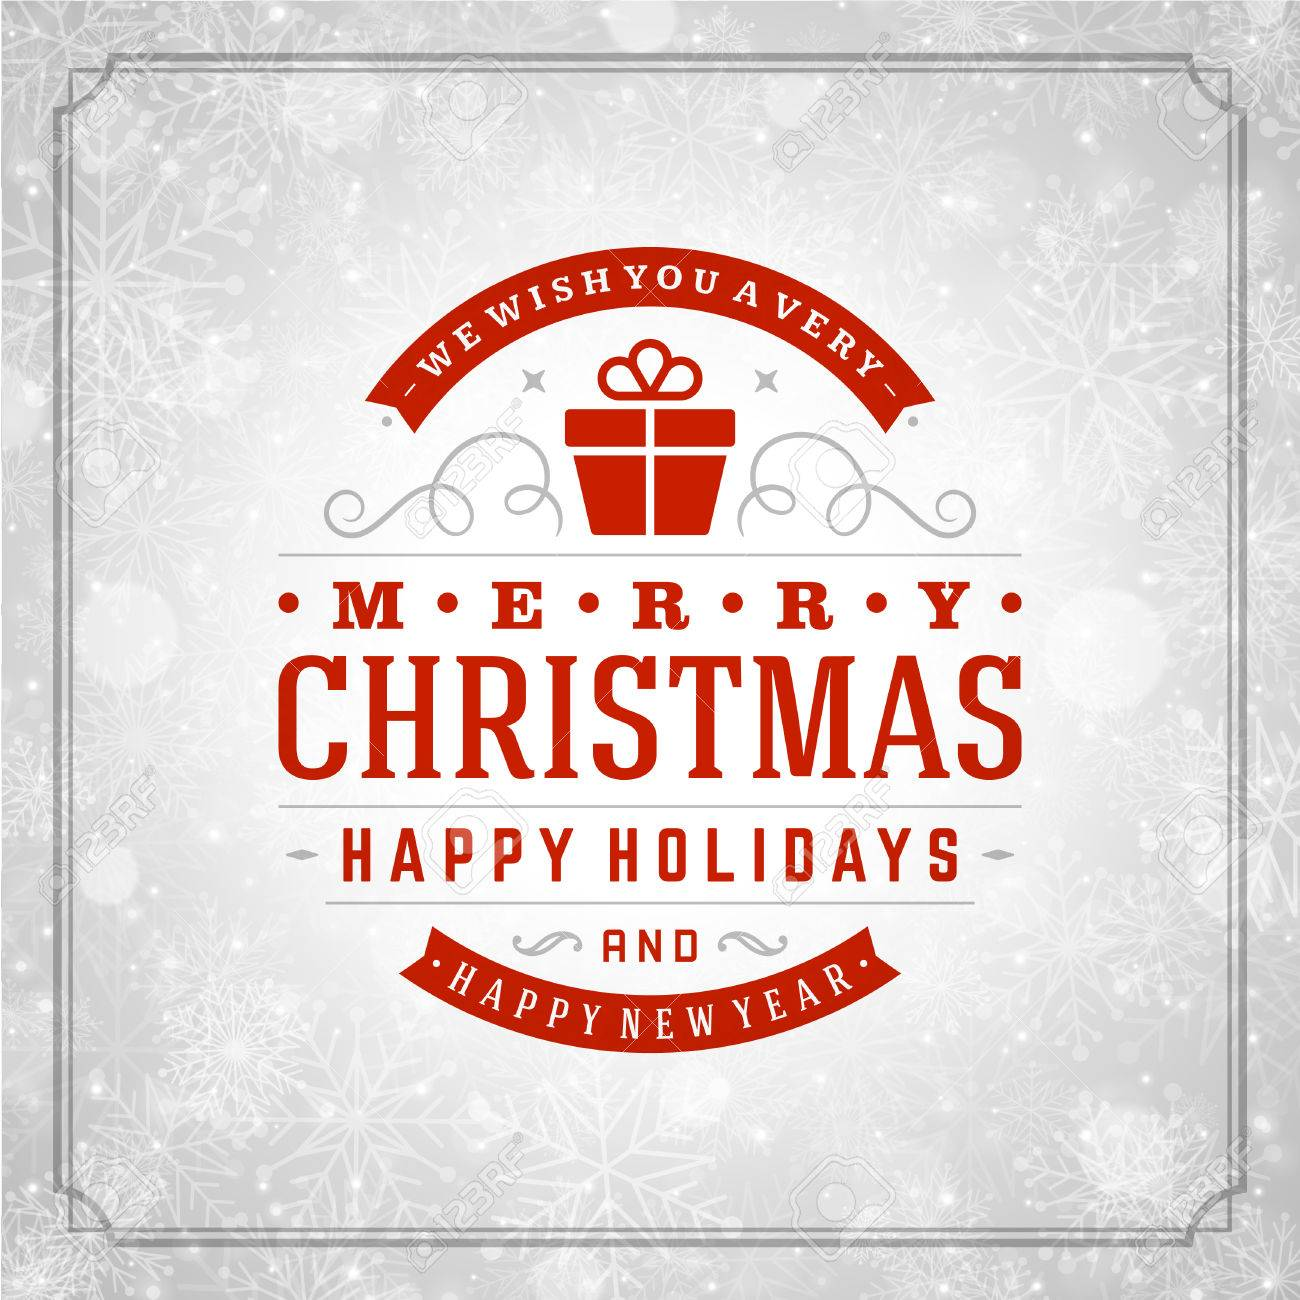 Christmas retro typography and light with snowflakes. Merry Christmas holidays wish greeting card design and vintage ornament decoration. Happy new year message. Vector background Eps 10. - 34399963